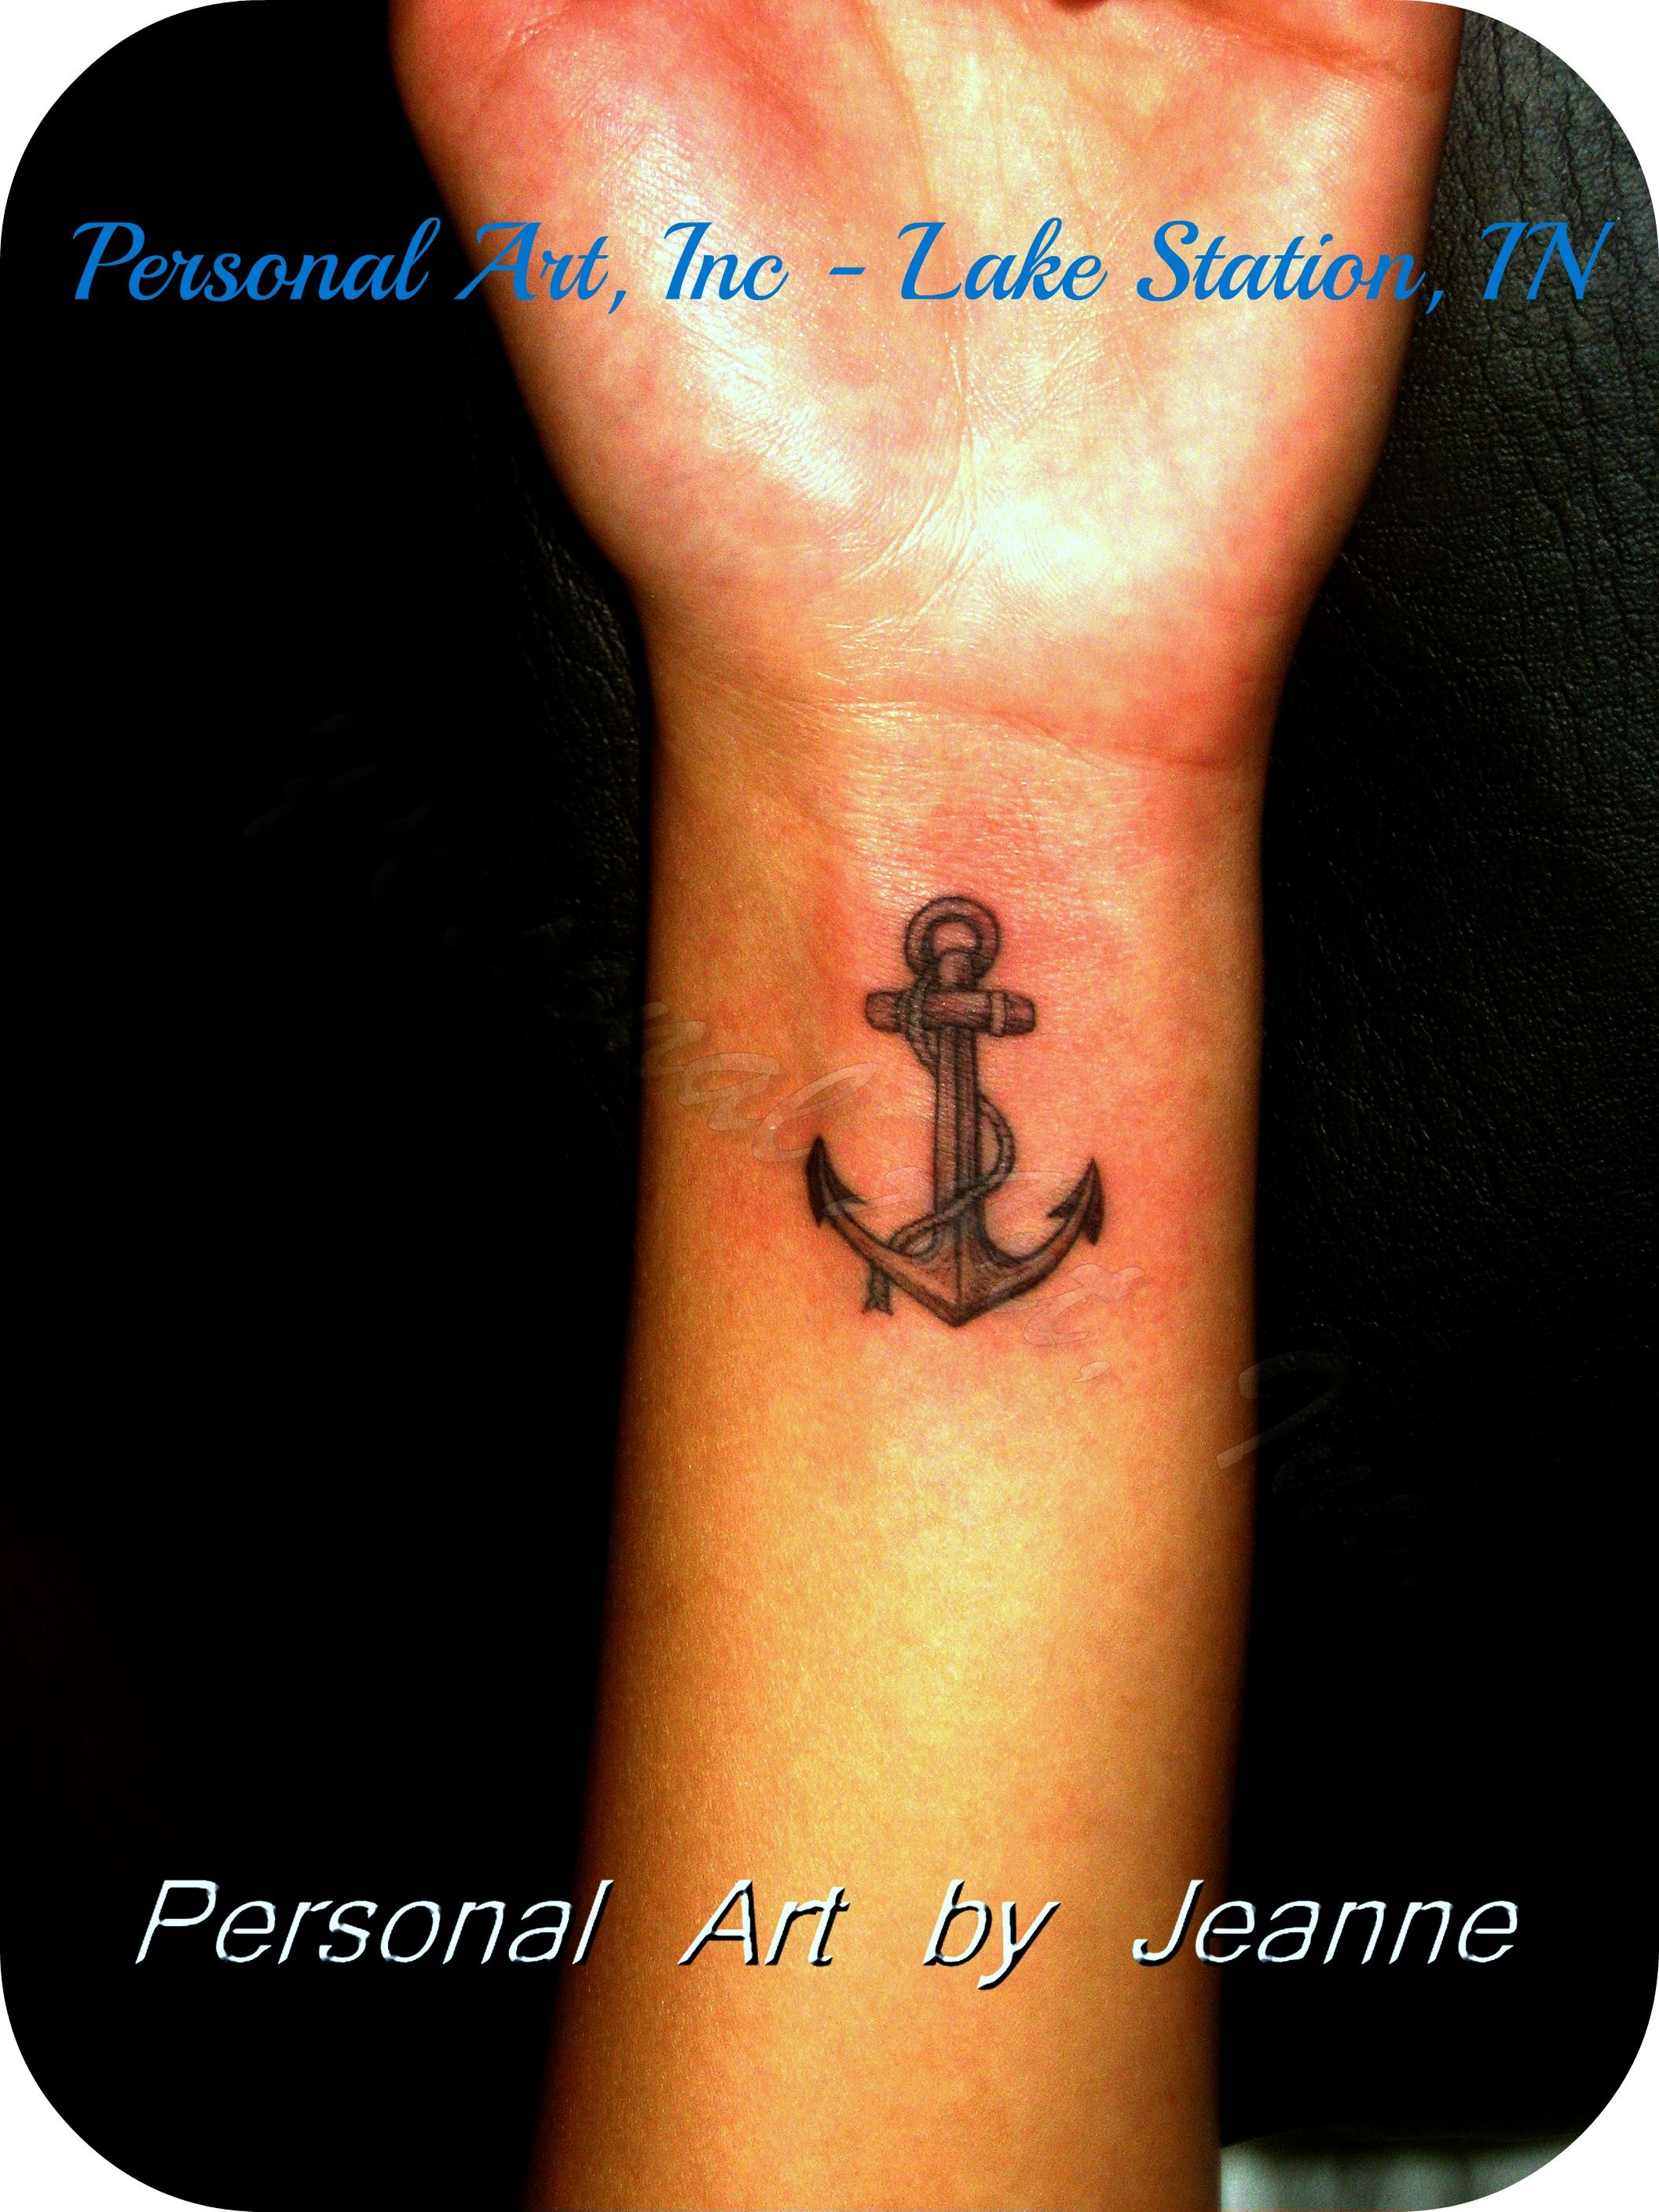 Her Dad Was A Navy Man She Got His Anchor As A Symbol Of How He